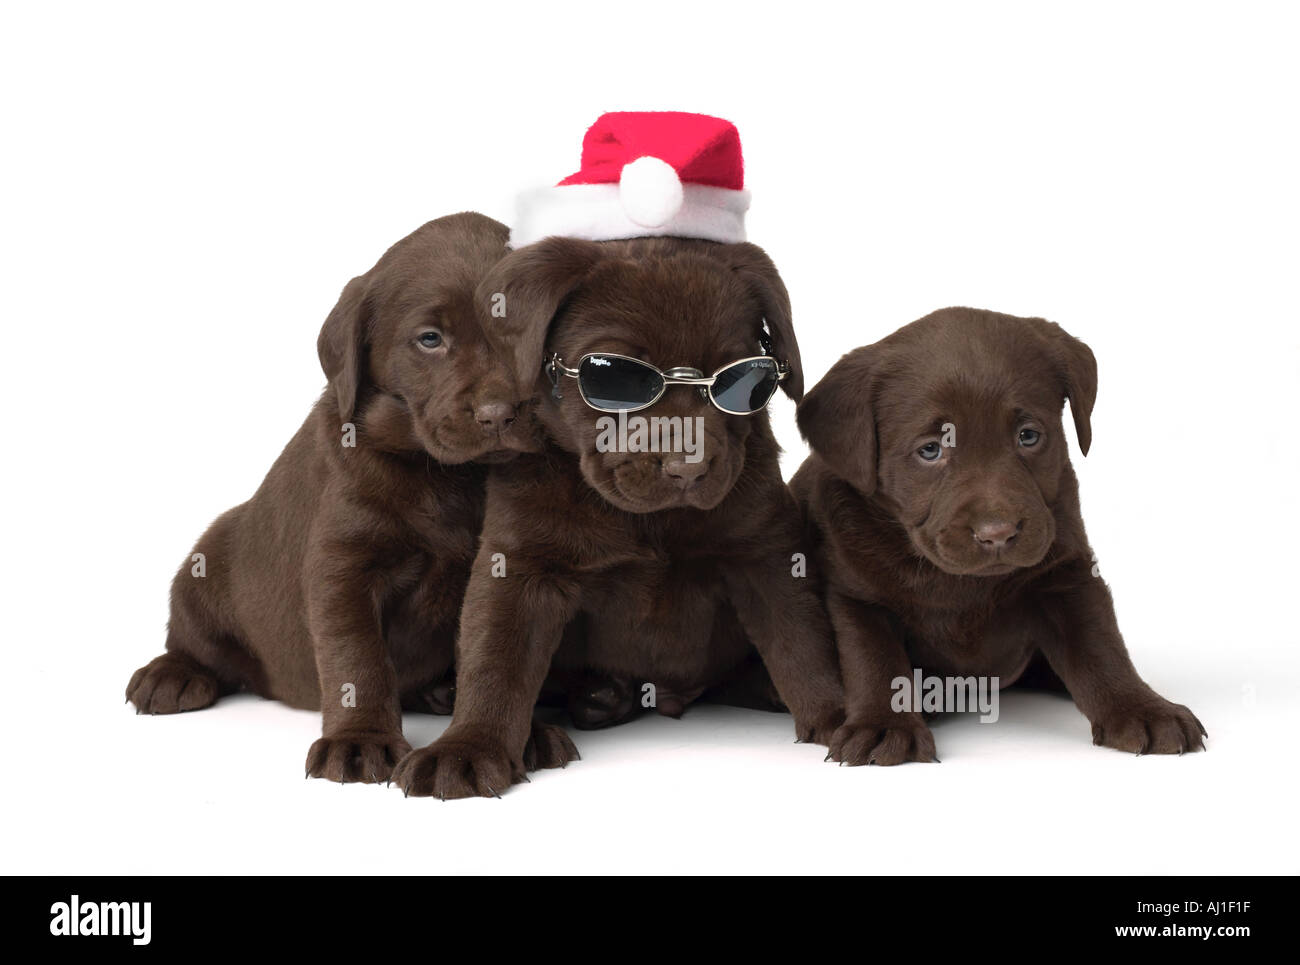 Chocolate Lab Puppies High Resolution Stock Photography And Images Alamy